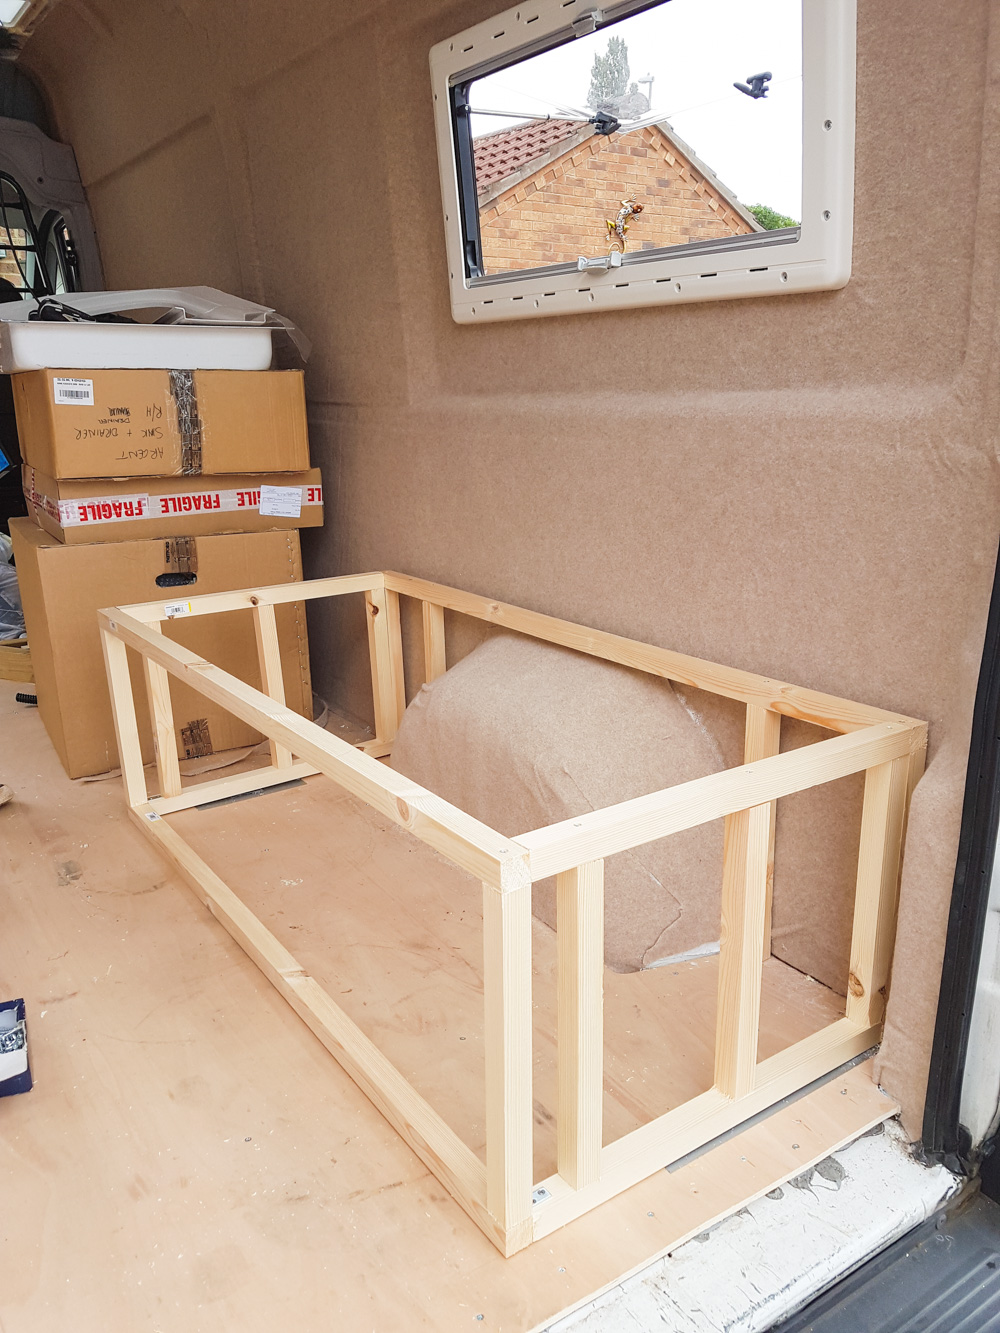 Building The Sofa Amp Bedframe Adventures In A Camper